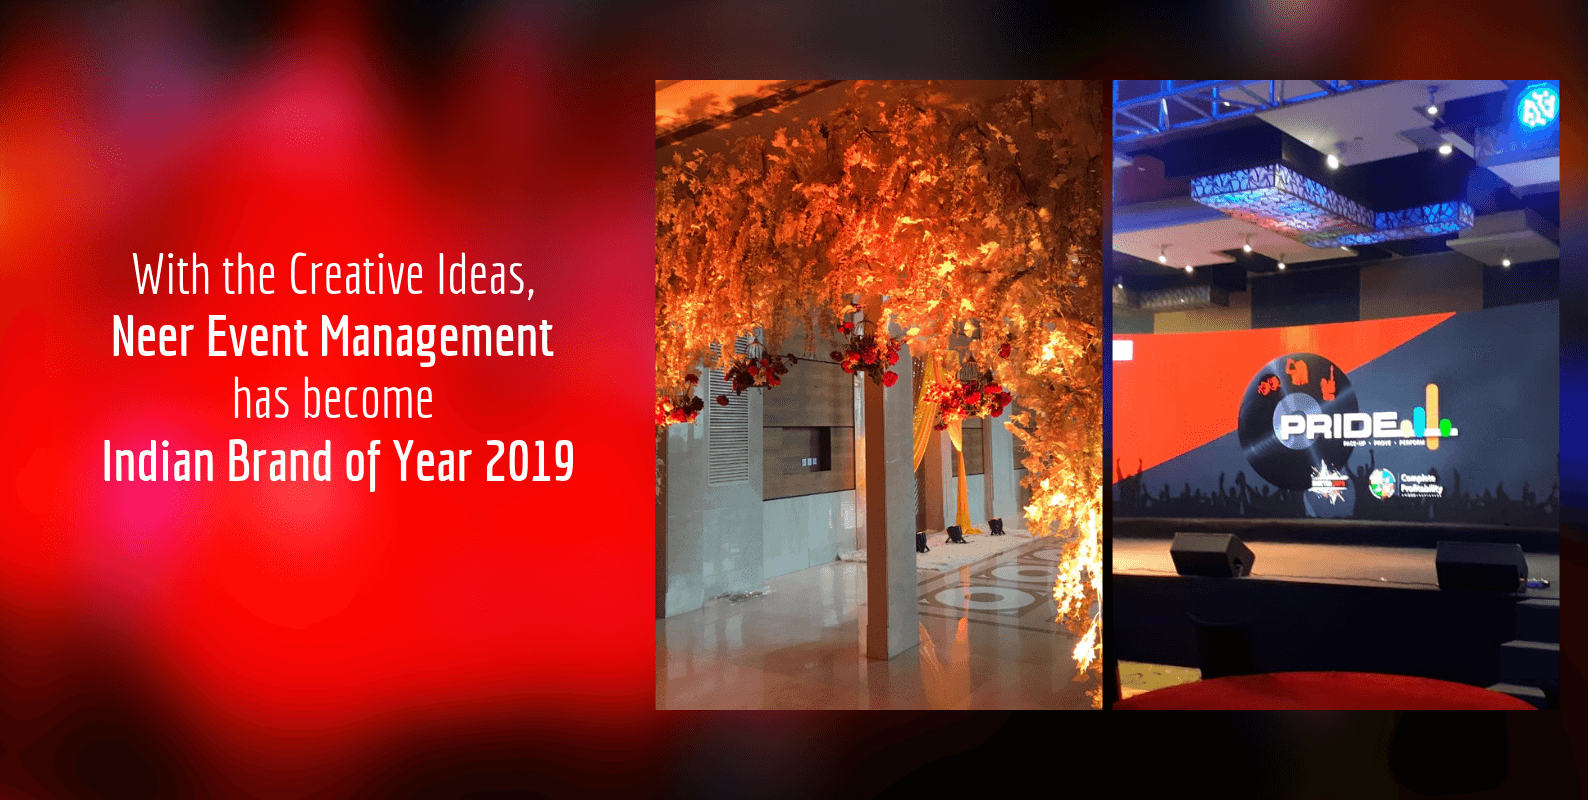 Neer Event Management has been Nominated Indian Brand of Year 2019